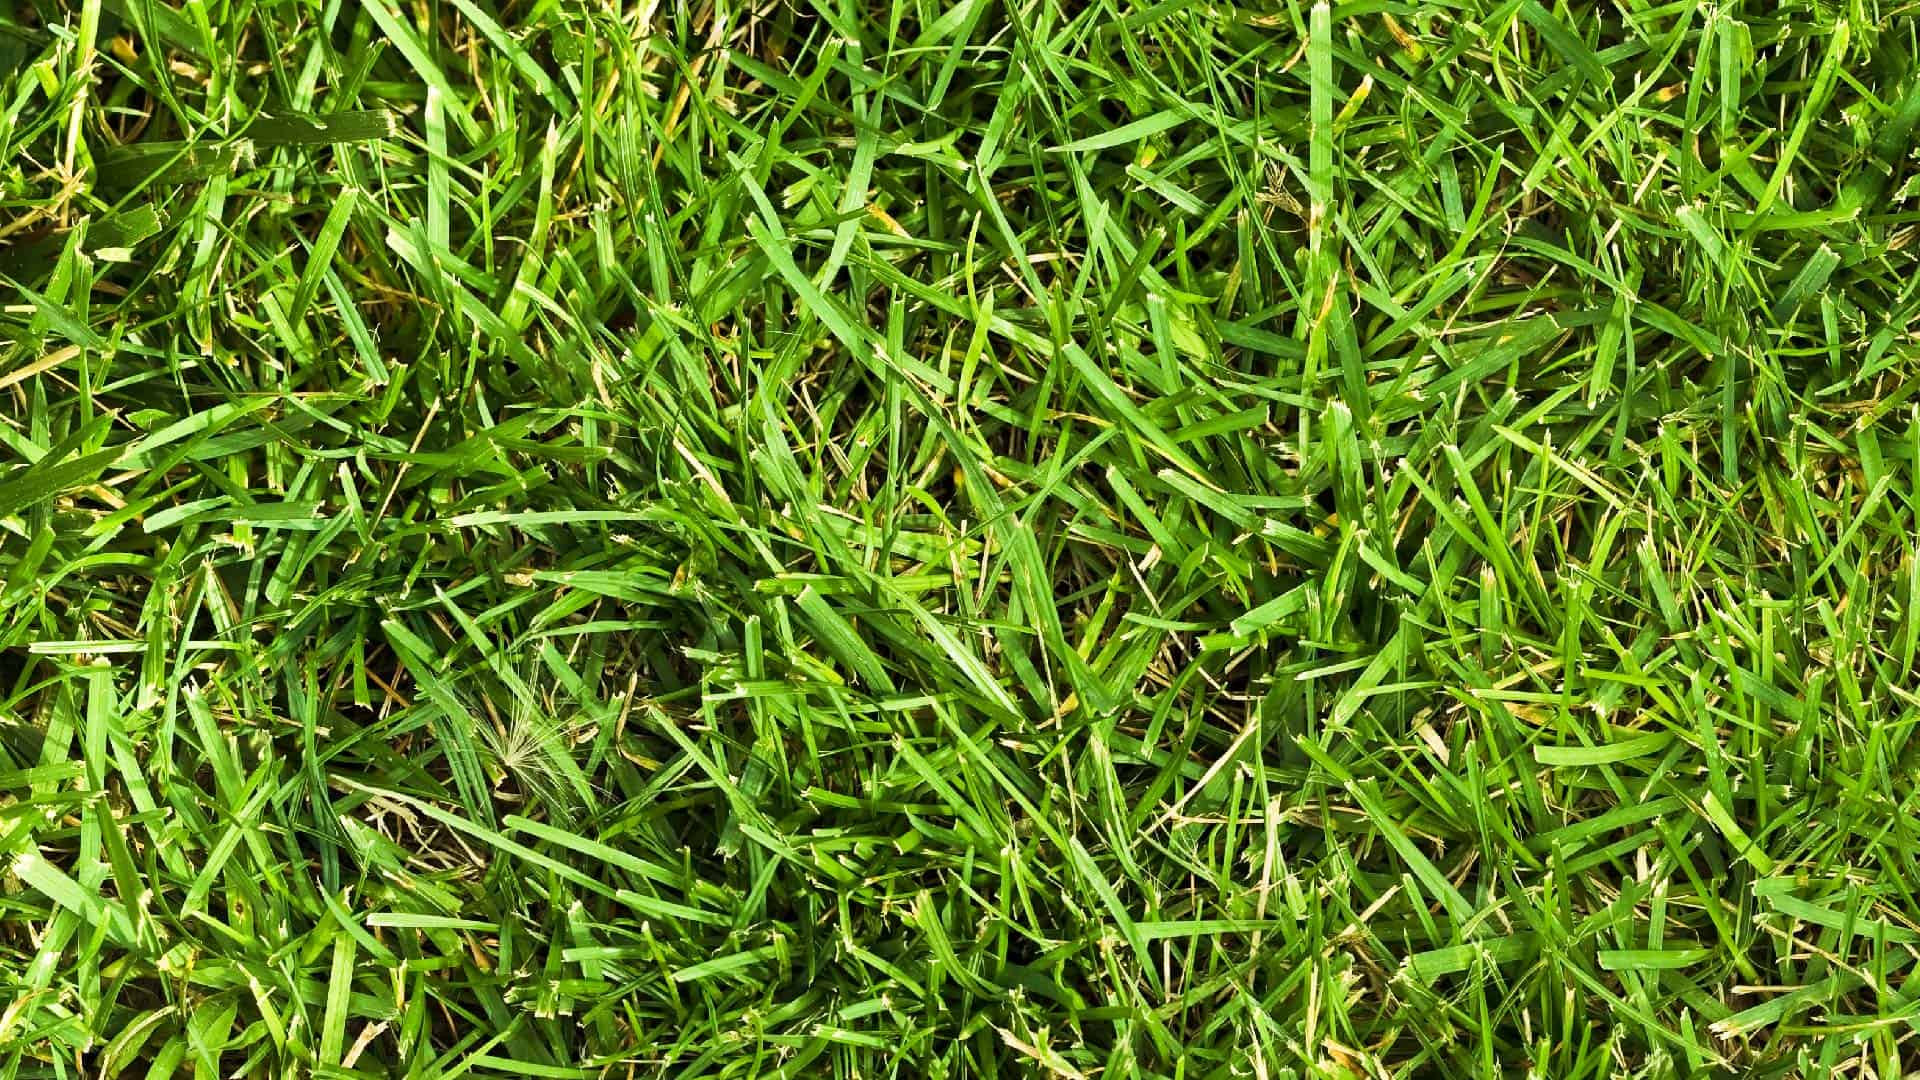 crabgrass growing in green